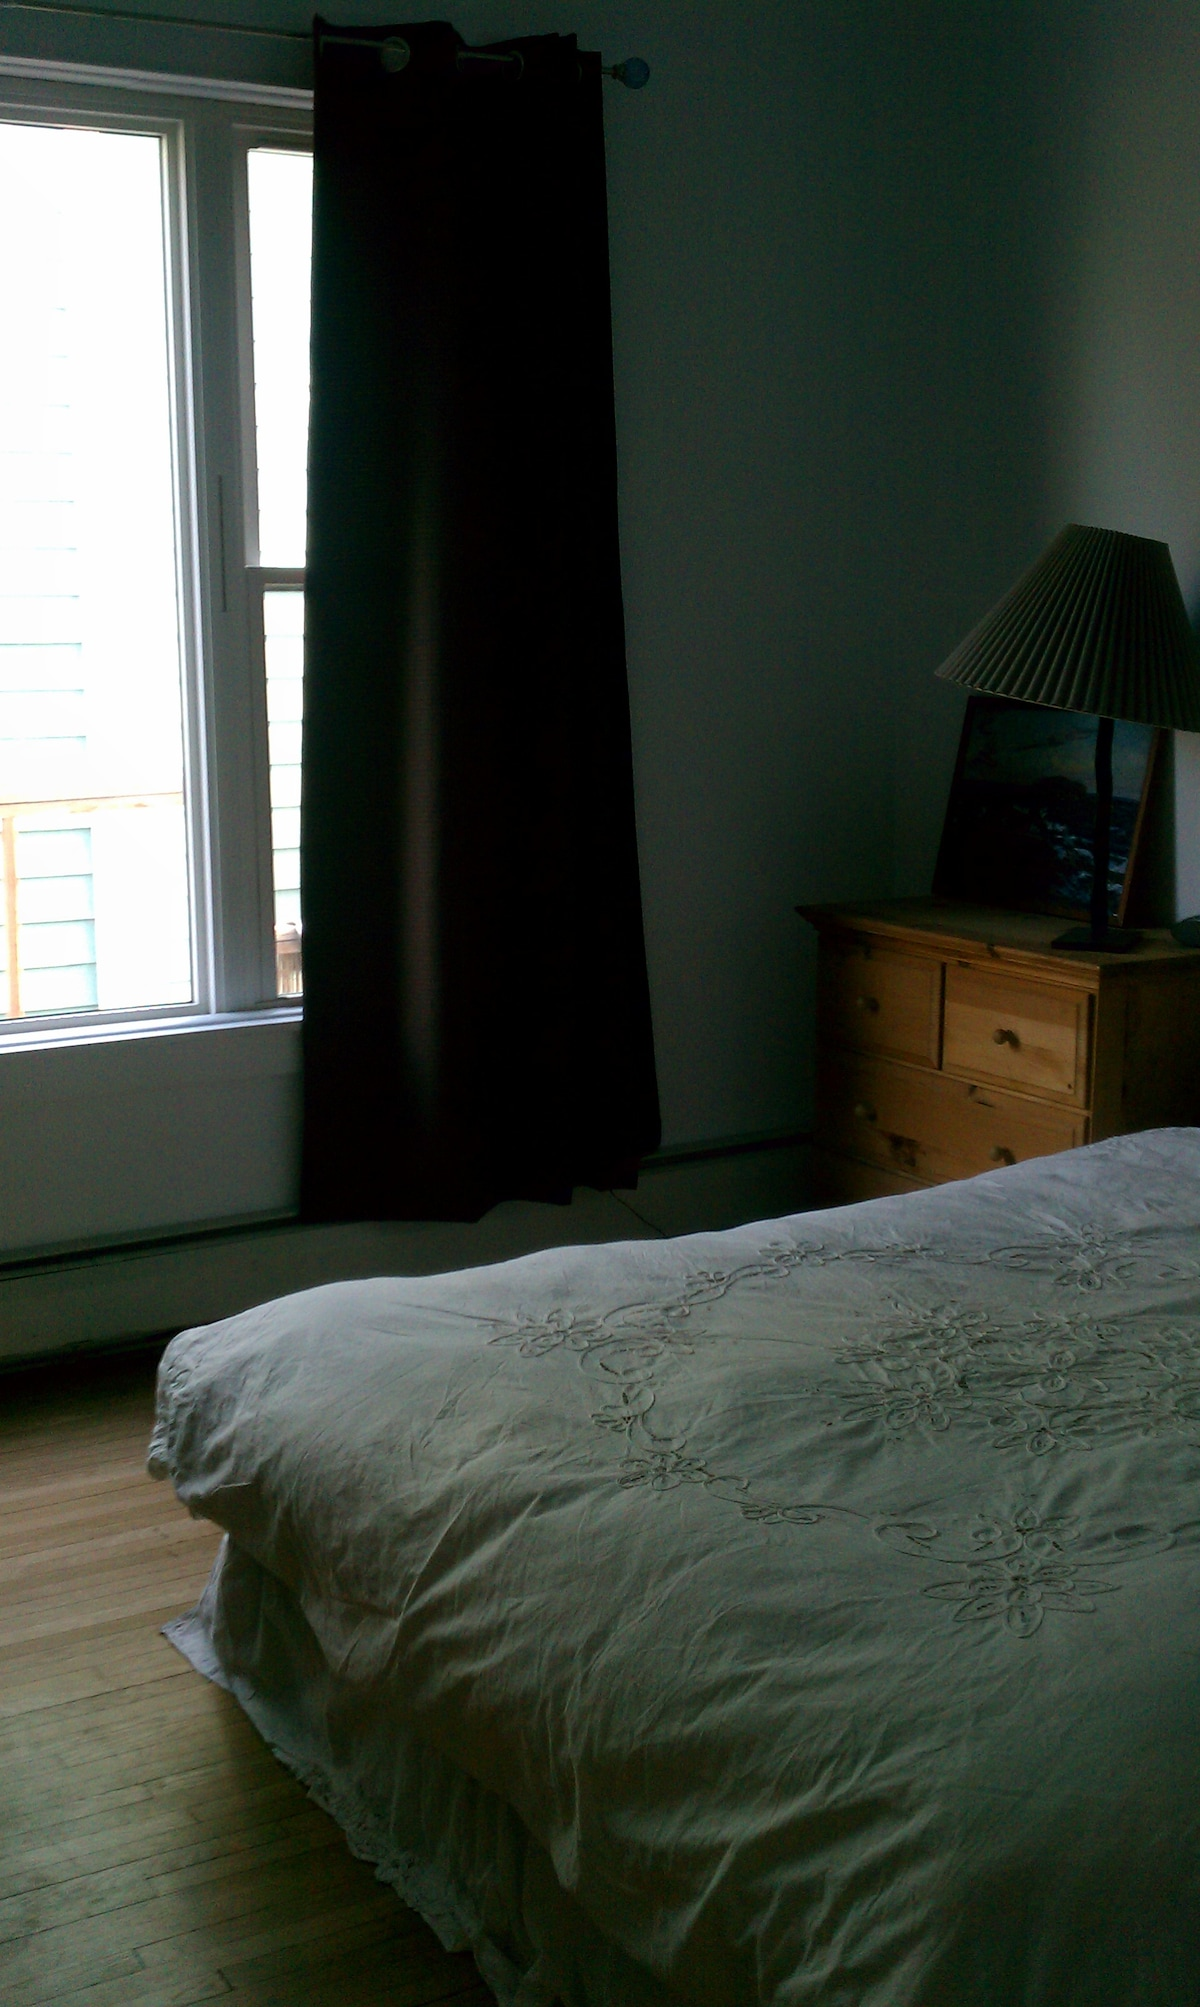 View of a part of the big picture window, queen bed and night stand in airbnb room.